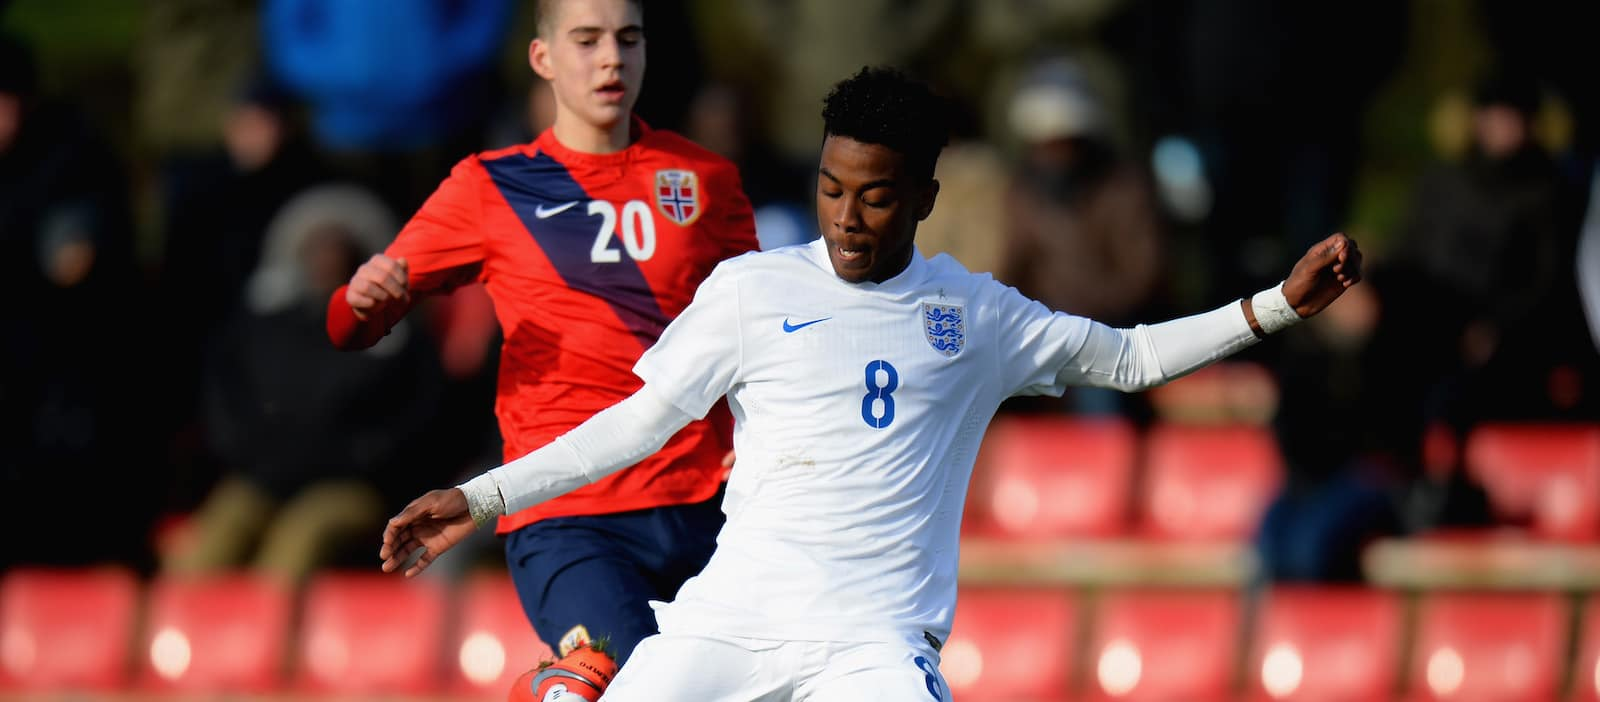 Angel Gomes omitted from Manchester United's matchday squad vs. AZ Alkmaar